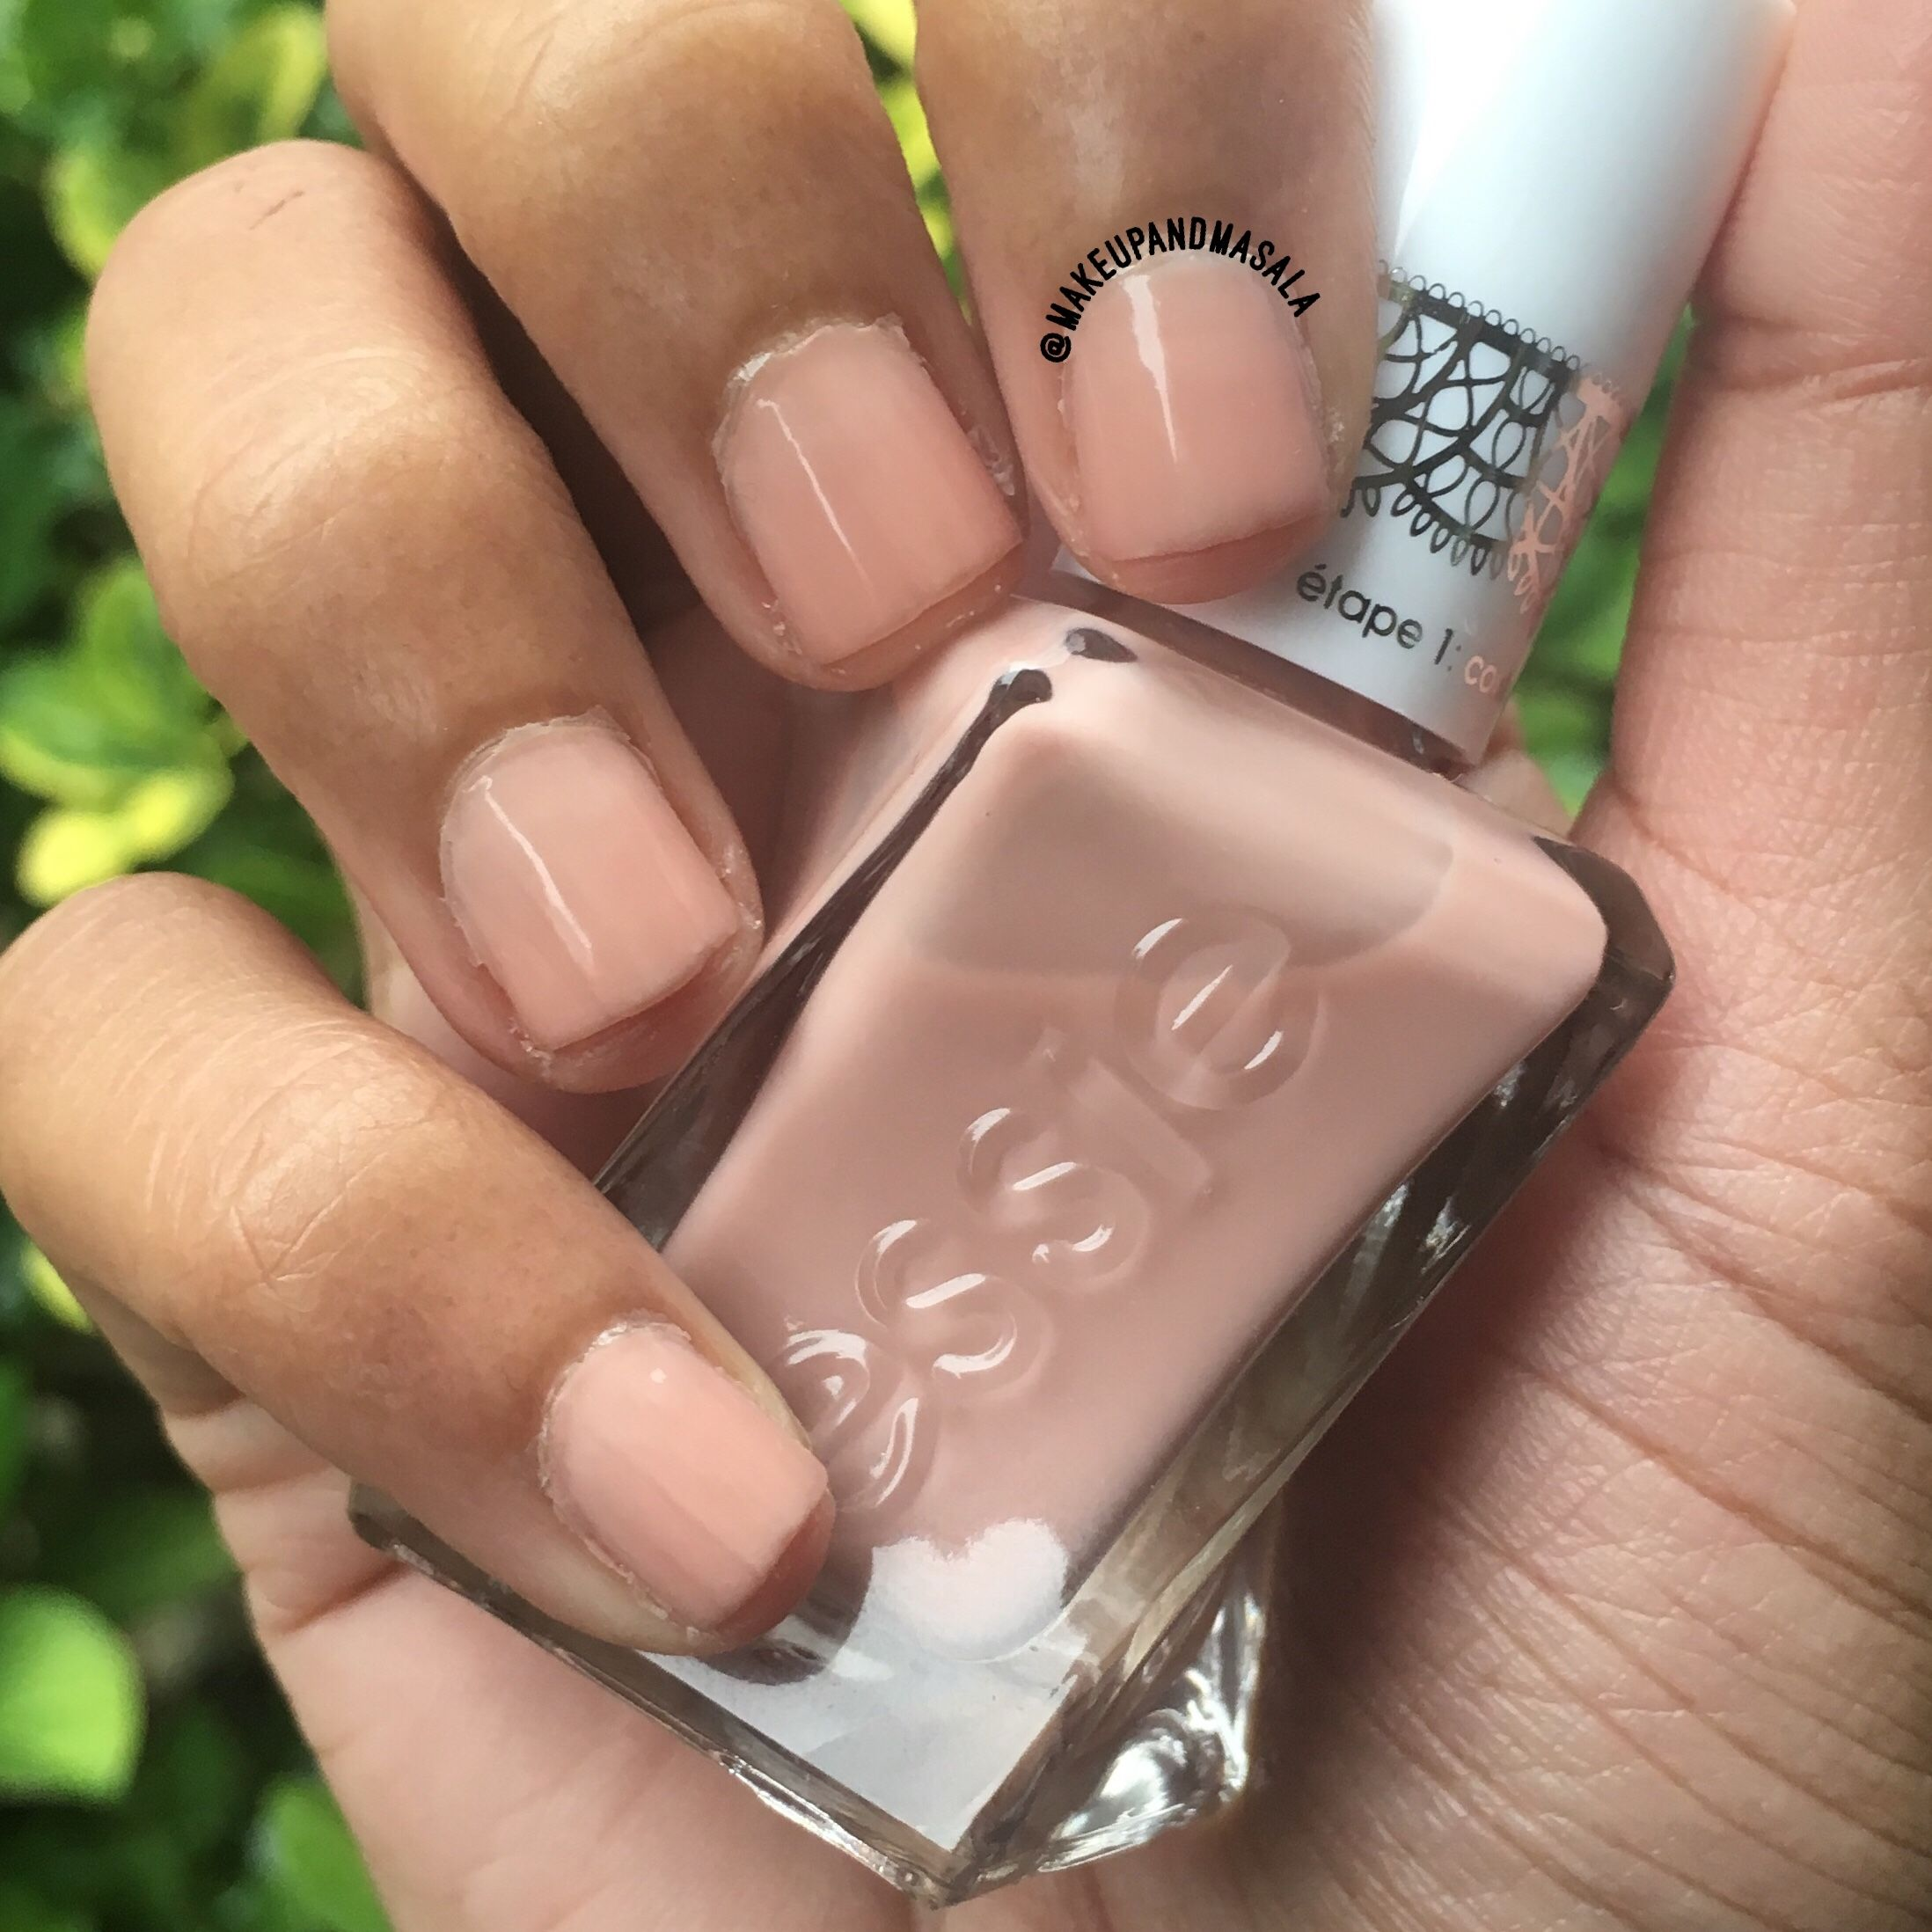 Of Corset From The Essie Sheer Silhouettes Collection Essie Nail Polish Essie Nail Corset Nails